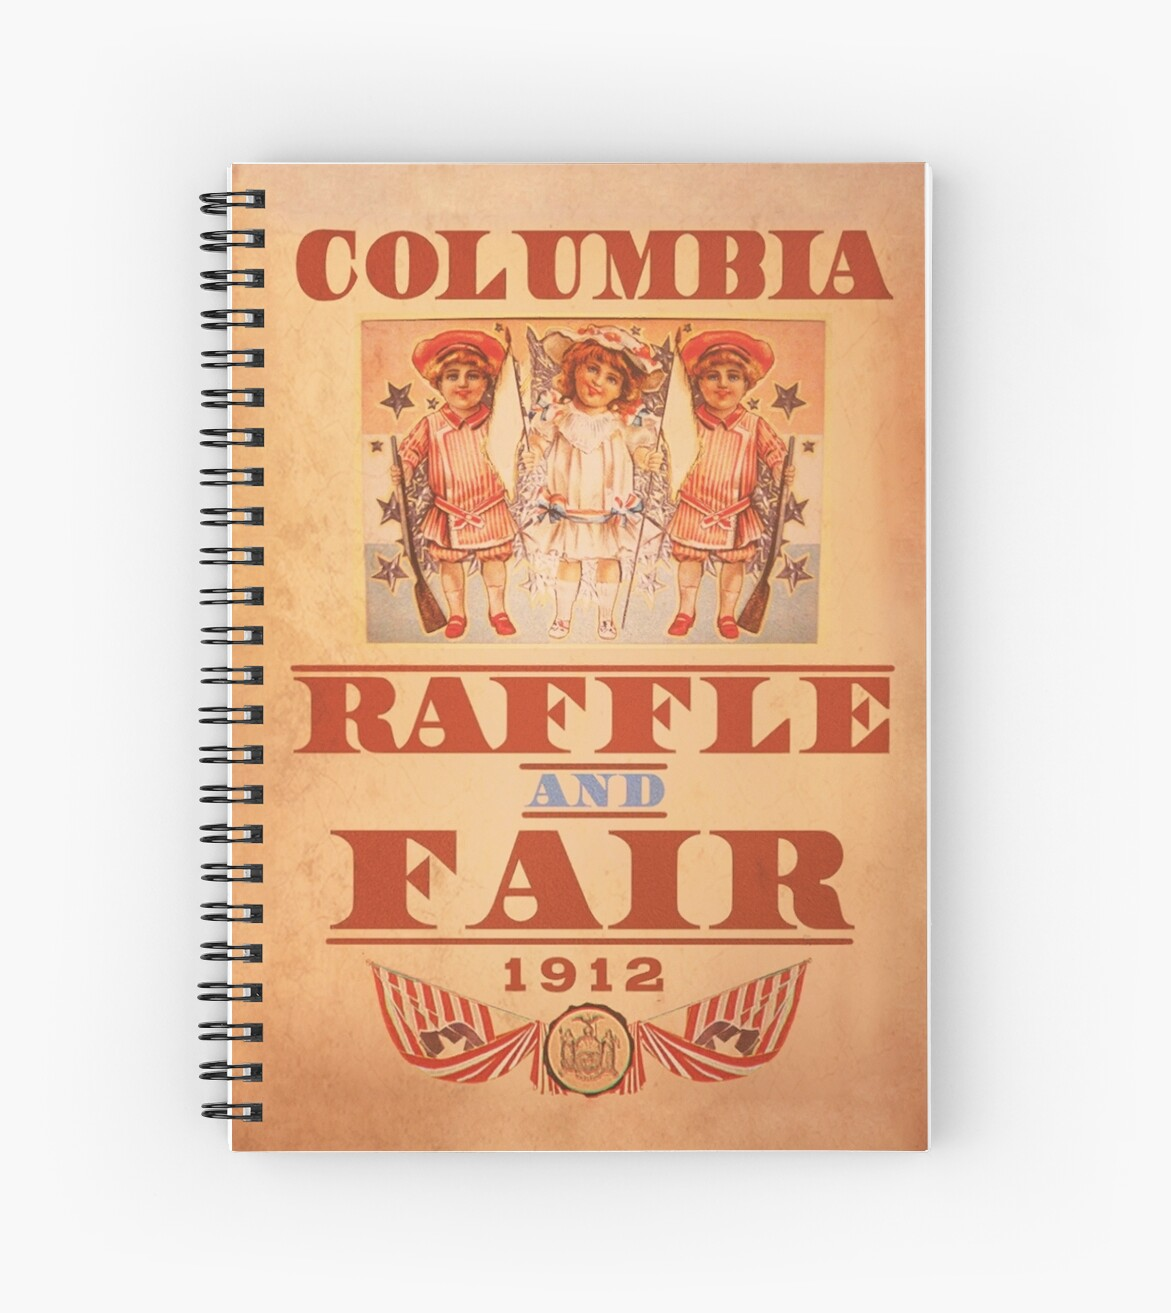 bioshock infinite columbia raffle and fair poster spiral bioshock infinite columbia raffle and fair poster by ponchtheowl